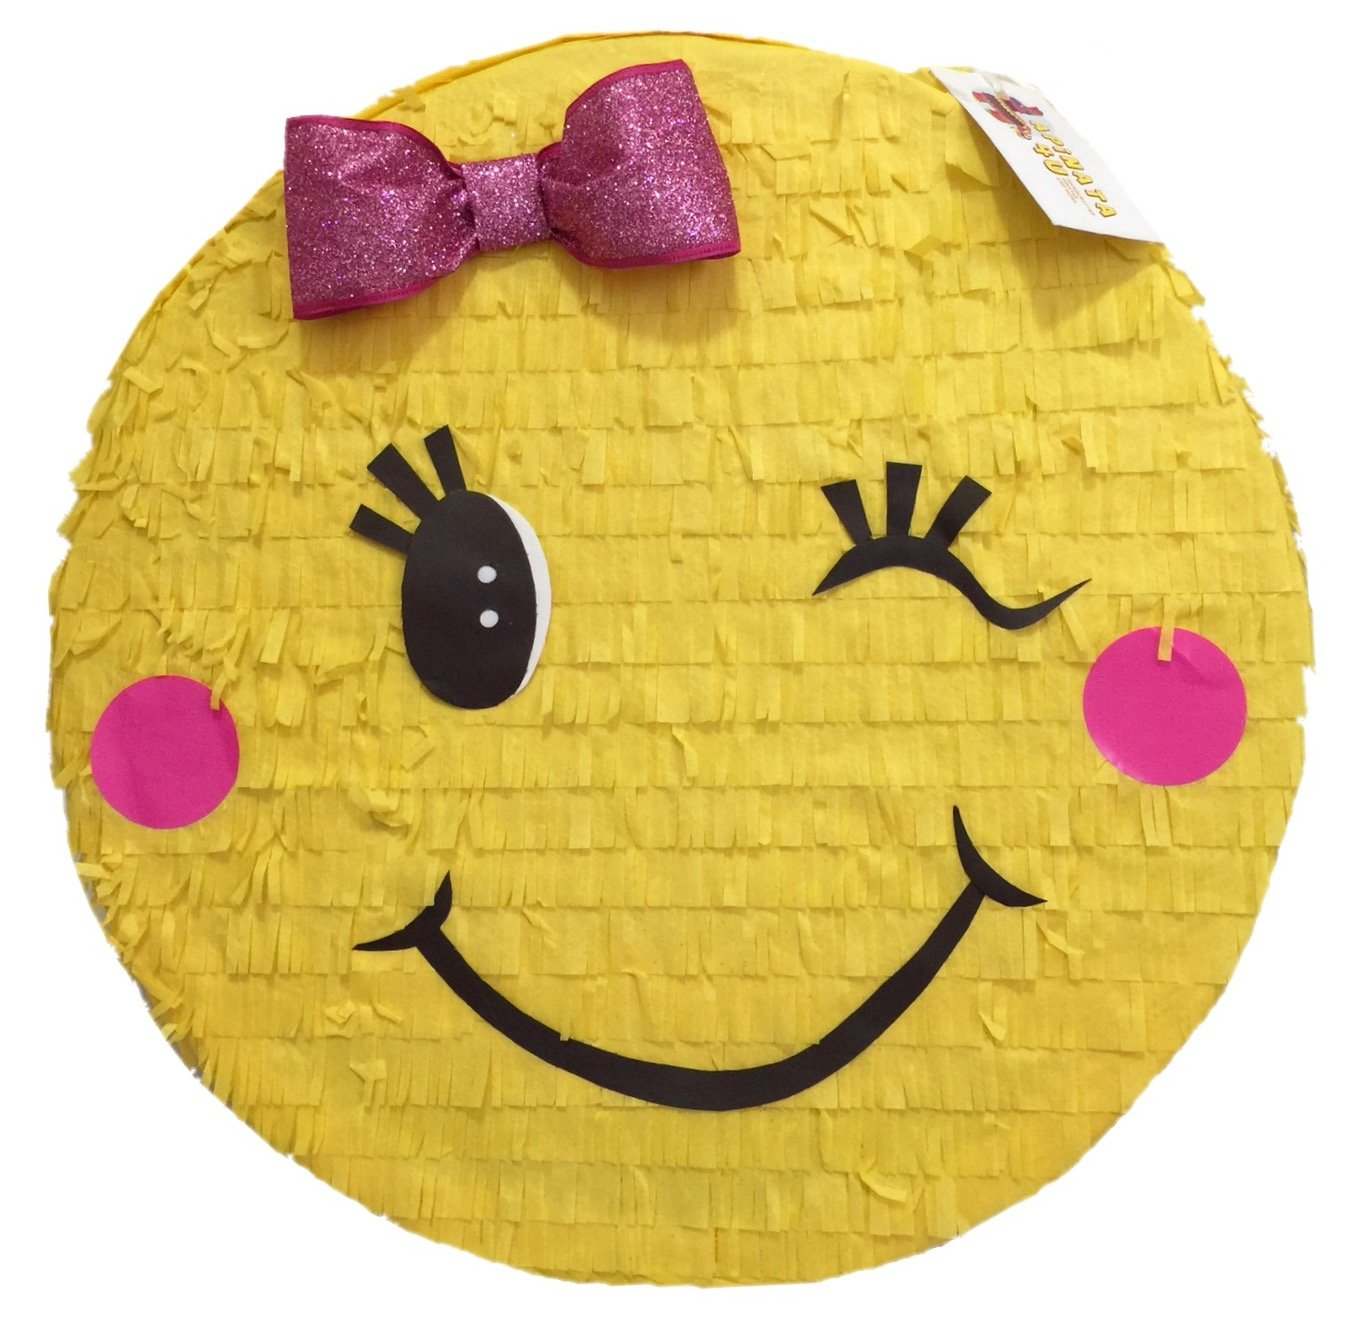 Toddler Girl Emoji Pinata with Eye Wink and Pink Bow